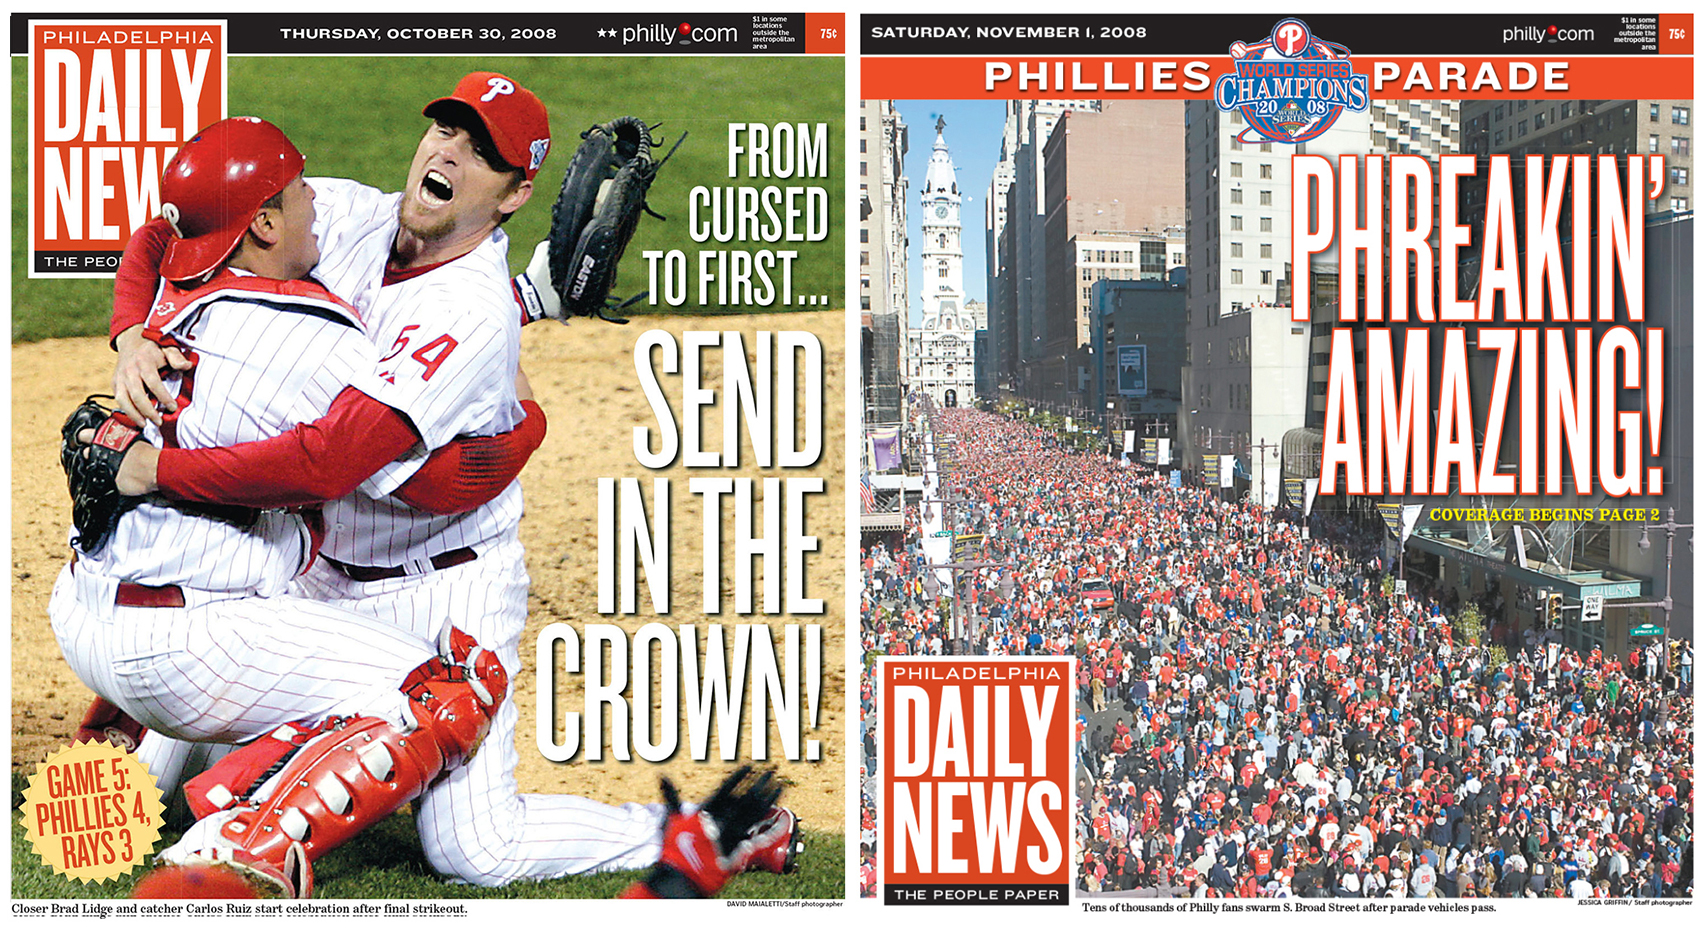 The Oct. 30, 2008 cover of the Daily News (left) and the Nov. 1, 2008 cover of the Daily news.